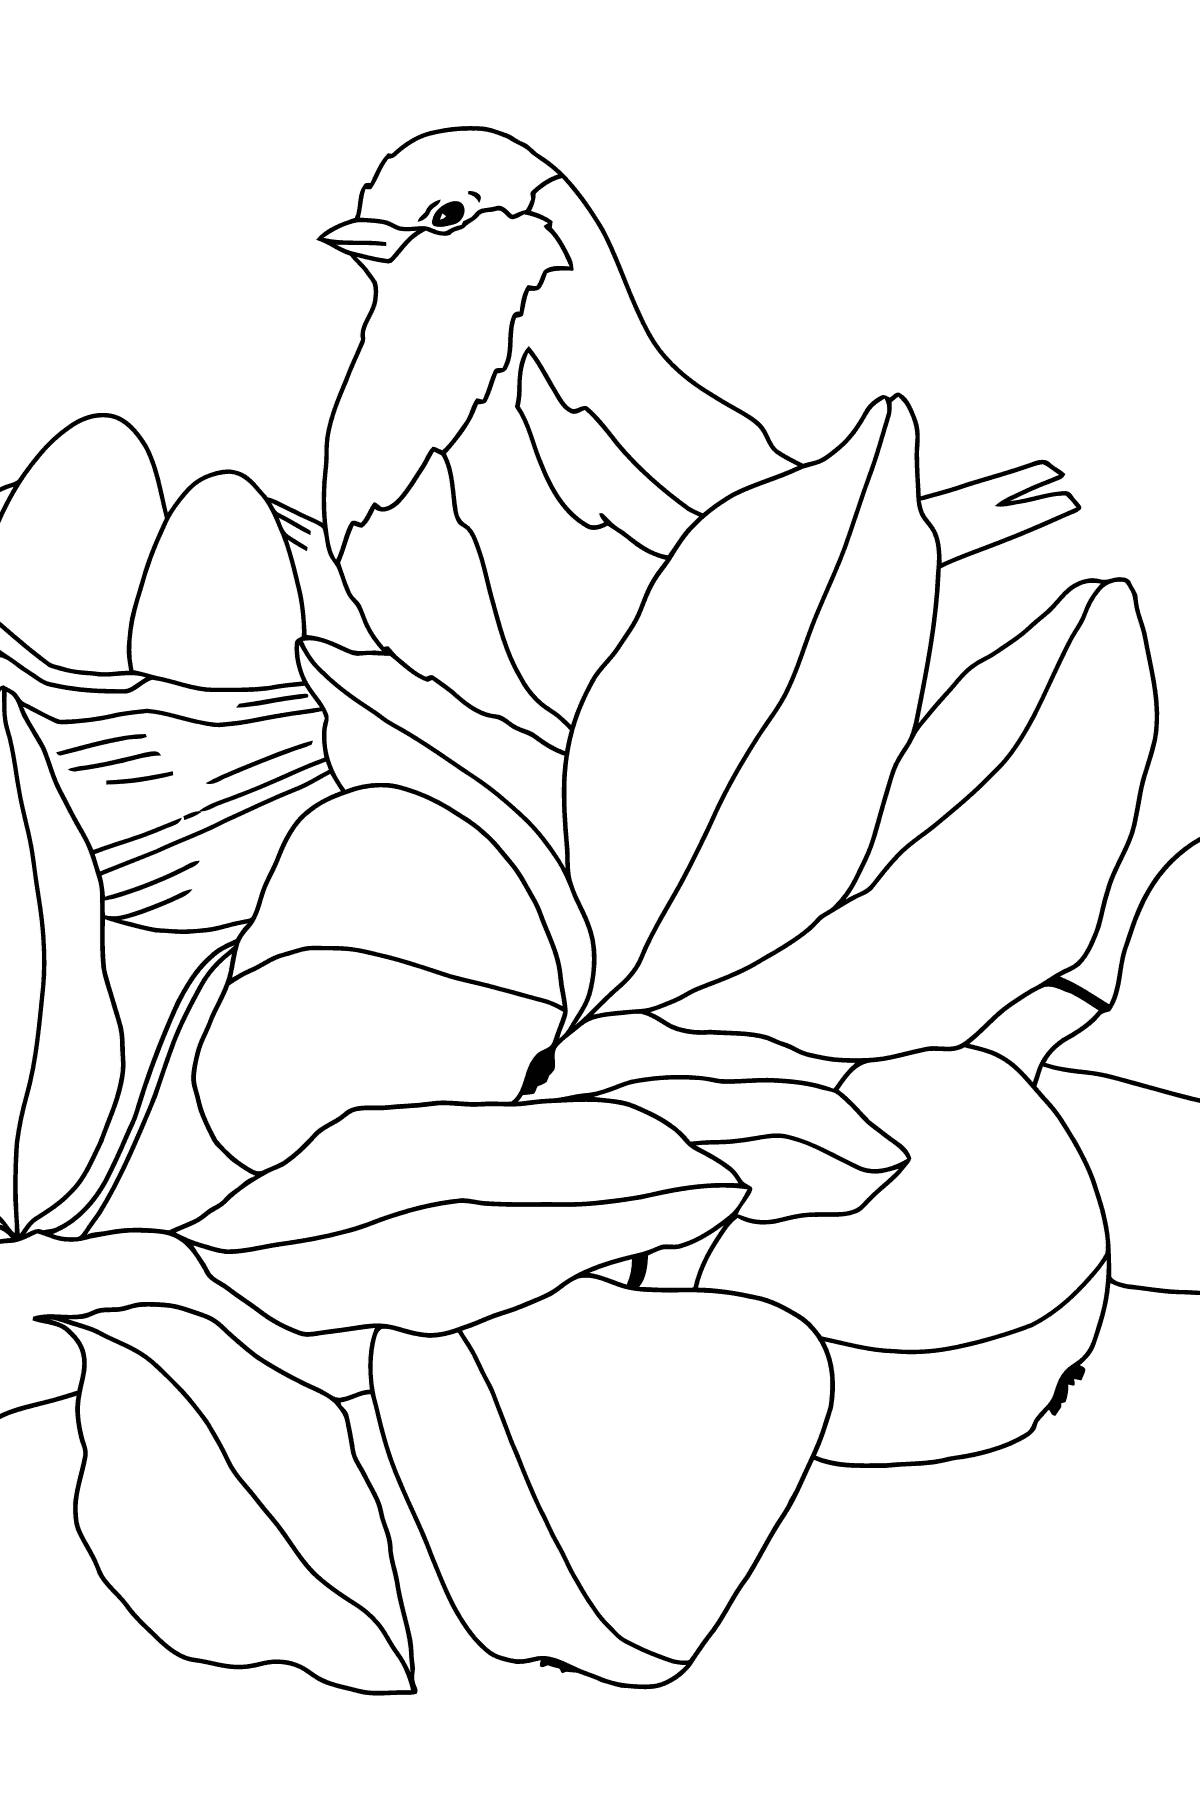 Spring Coloring Page - Time for Nestlings for Kids